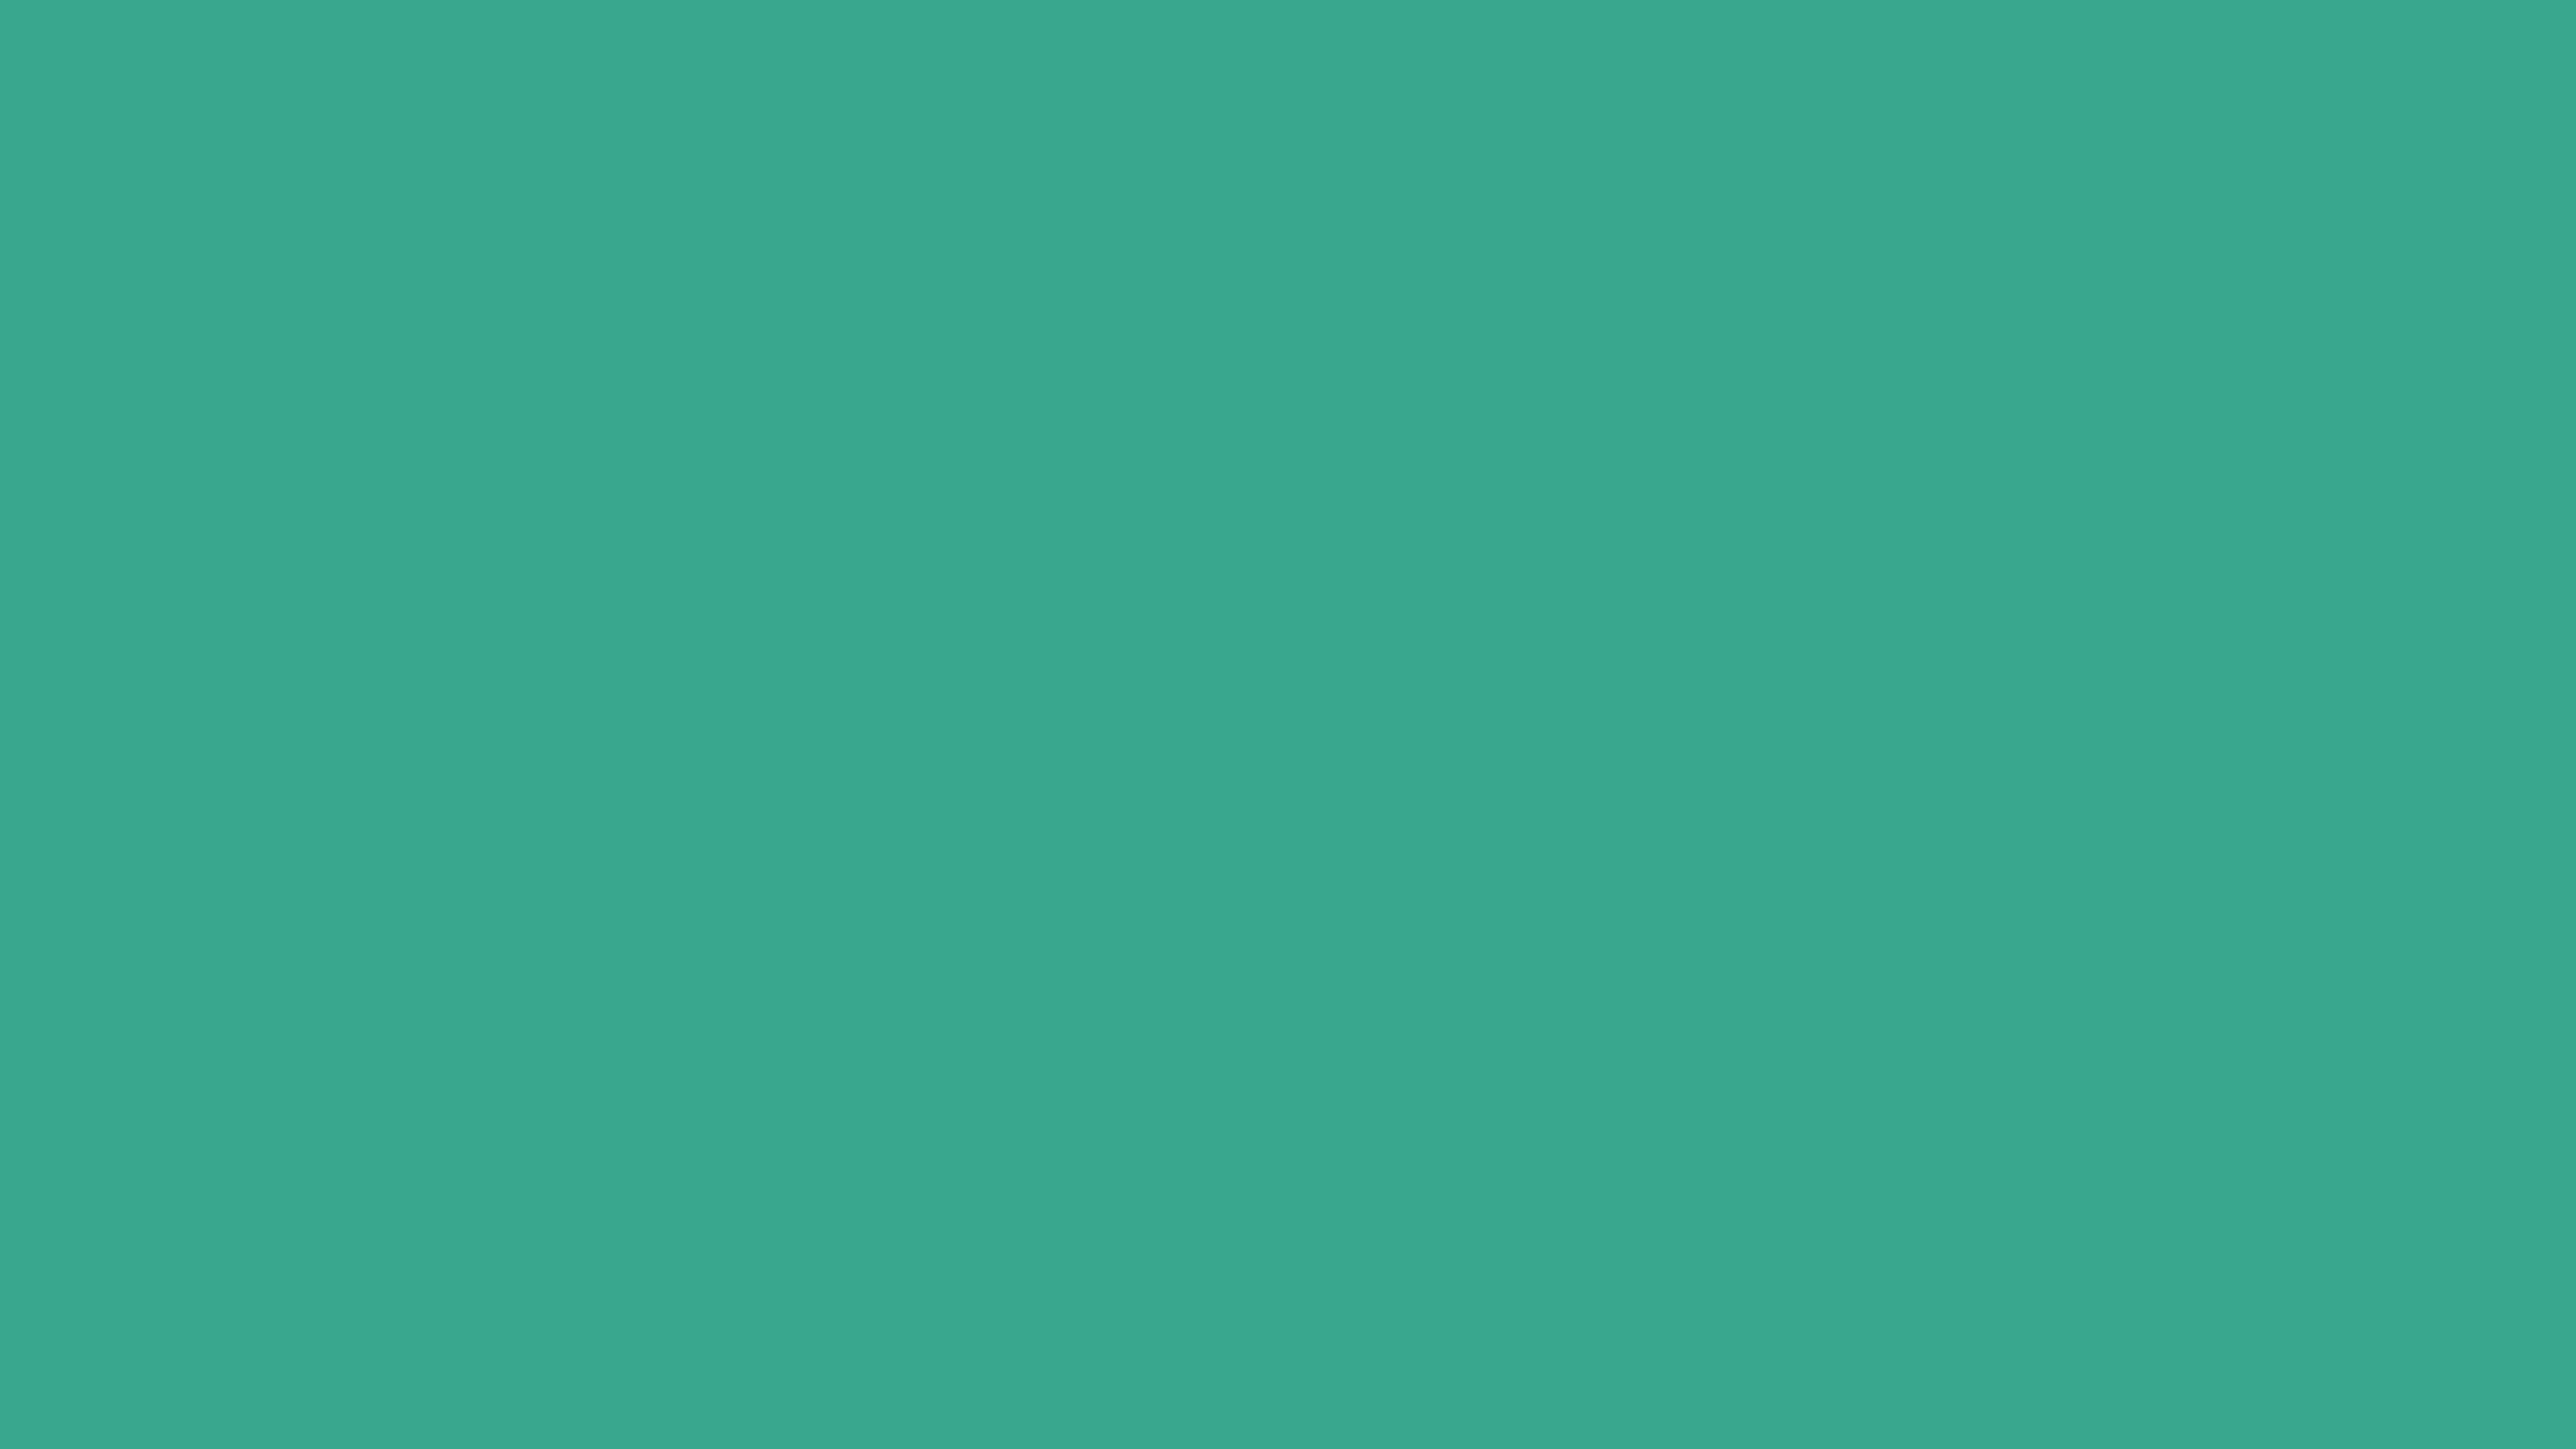 4096x2304 Zomp Solid Color Background